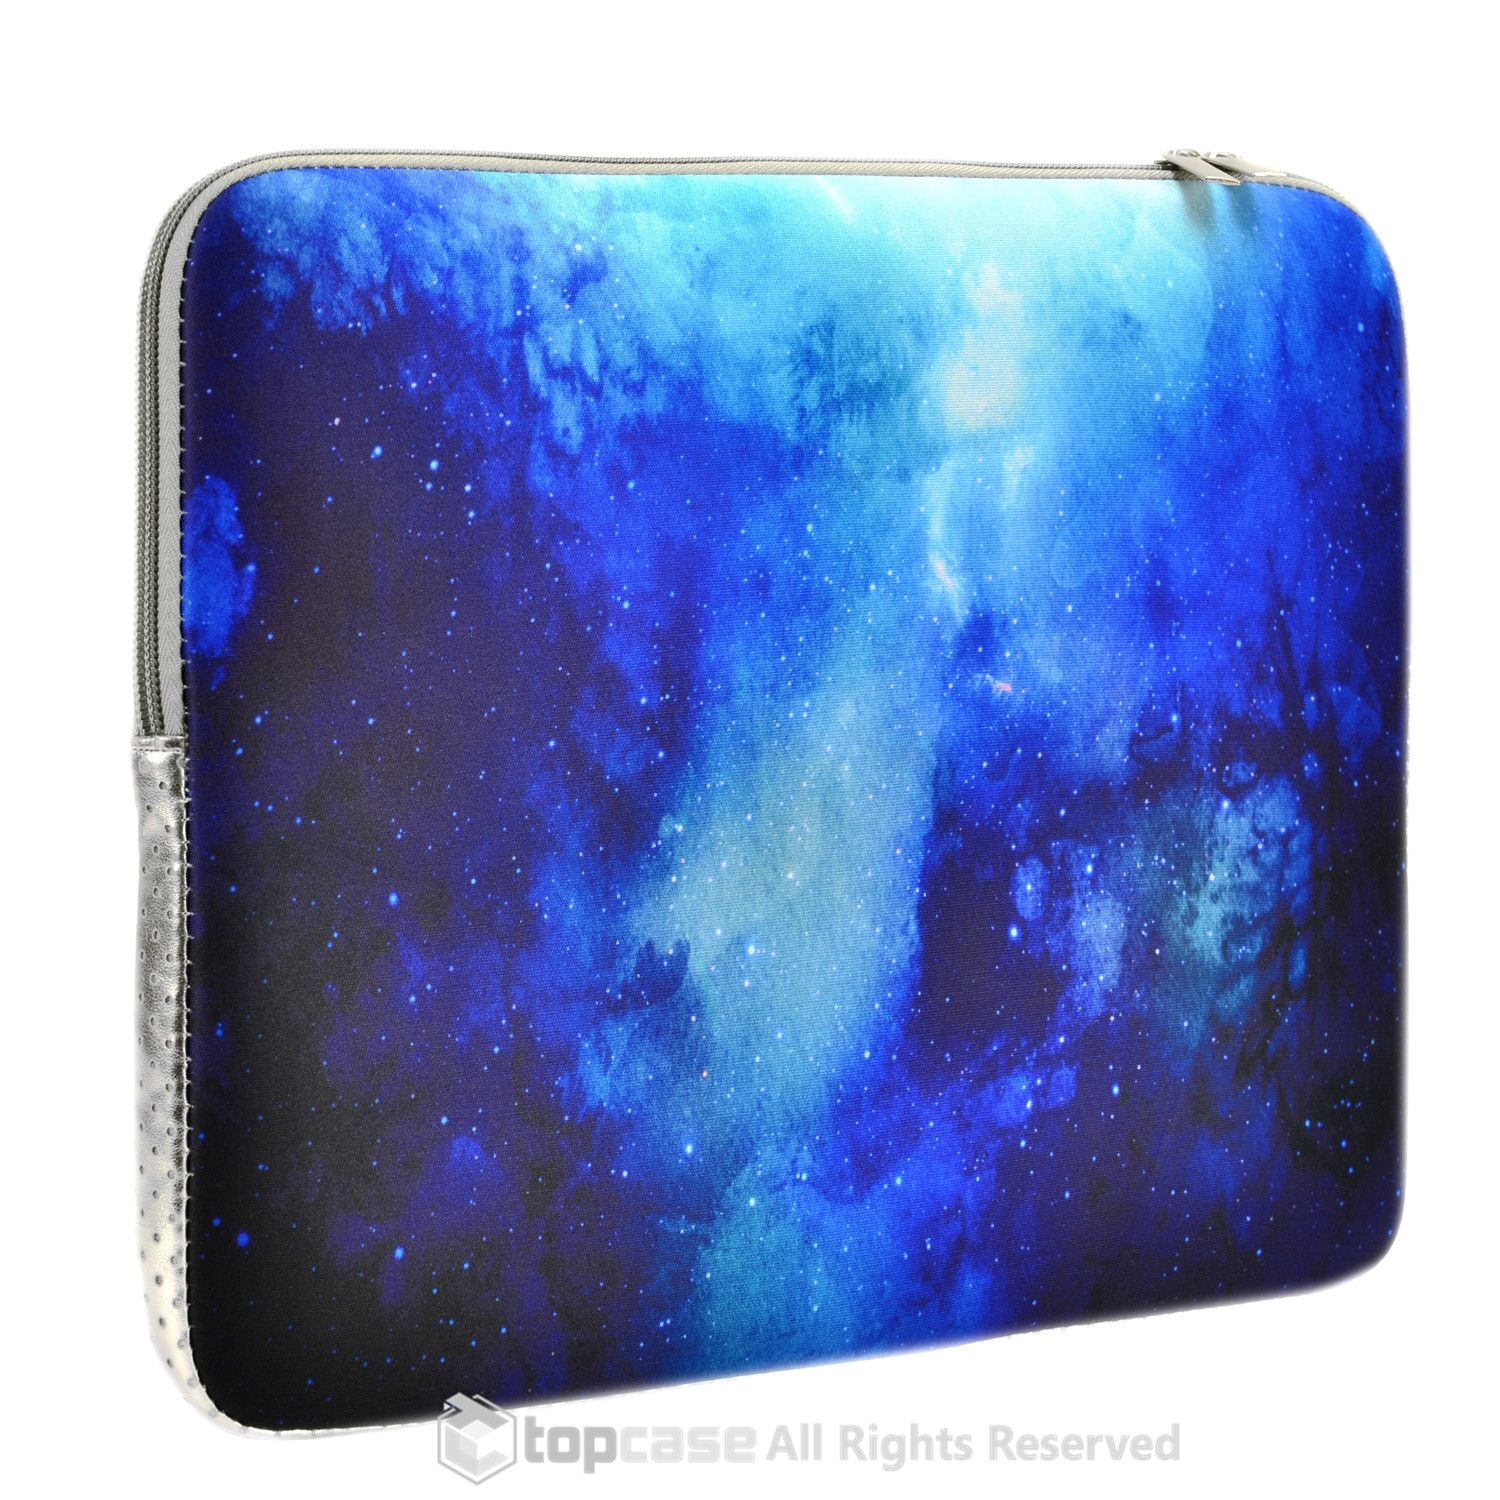 "Blue Galaxy Graphic Zipper Sleeve Bag Case for All Laptop 13"" 13-inch Macbook Pro with or without Retina Display / Macbook Air / Macbook Unibody / Ultrabook / Chromebook"